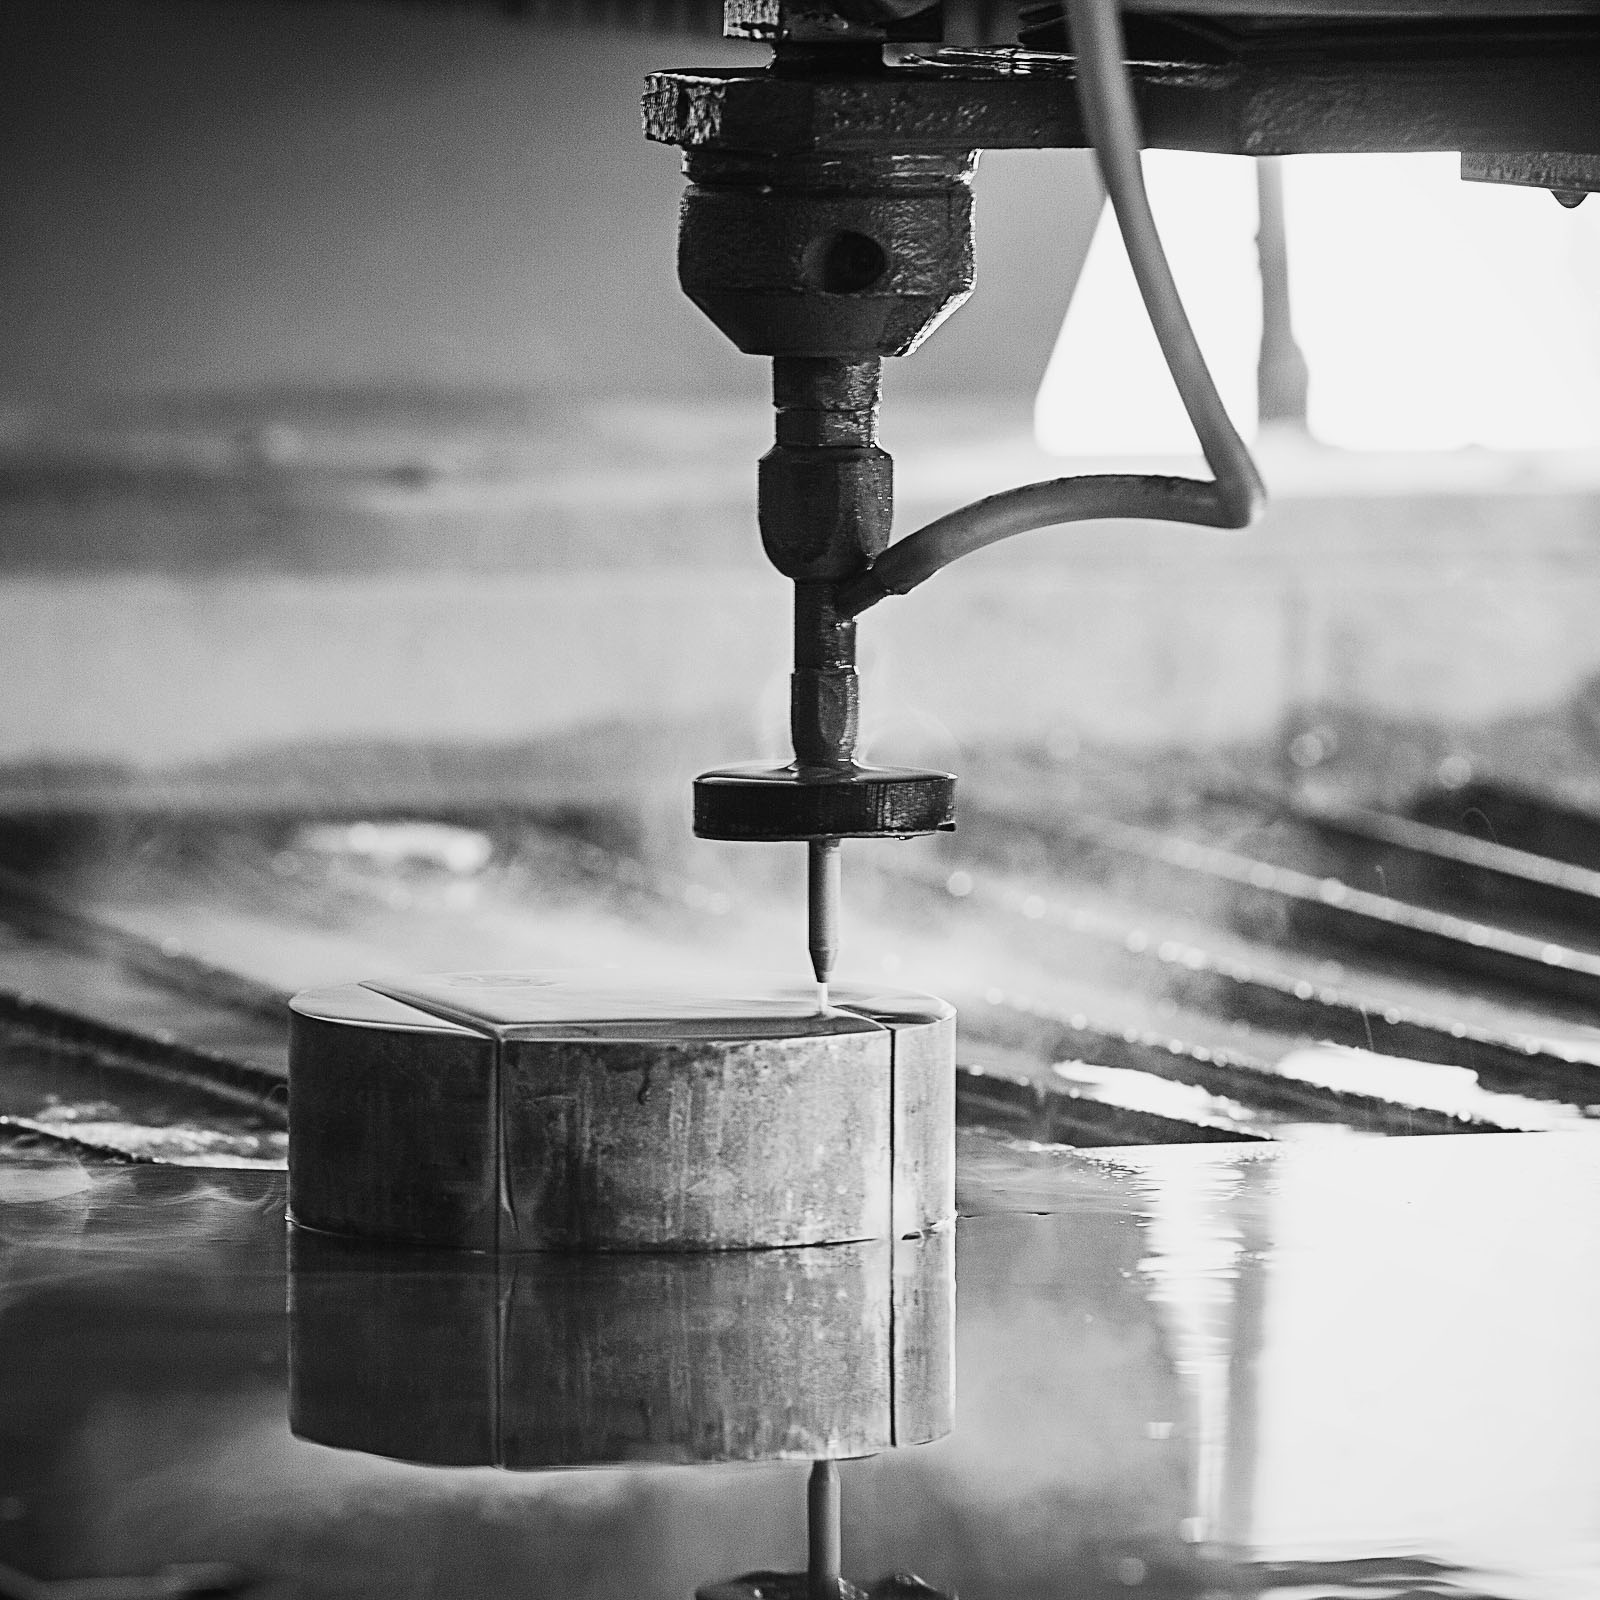 Waterjet cutting services at wilmingtonironworks.com